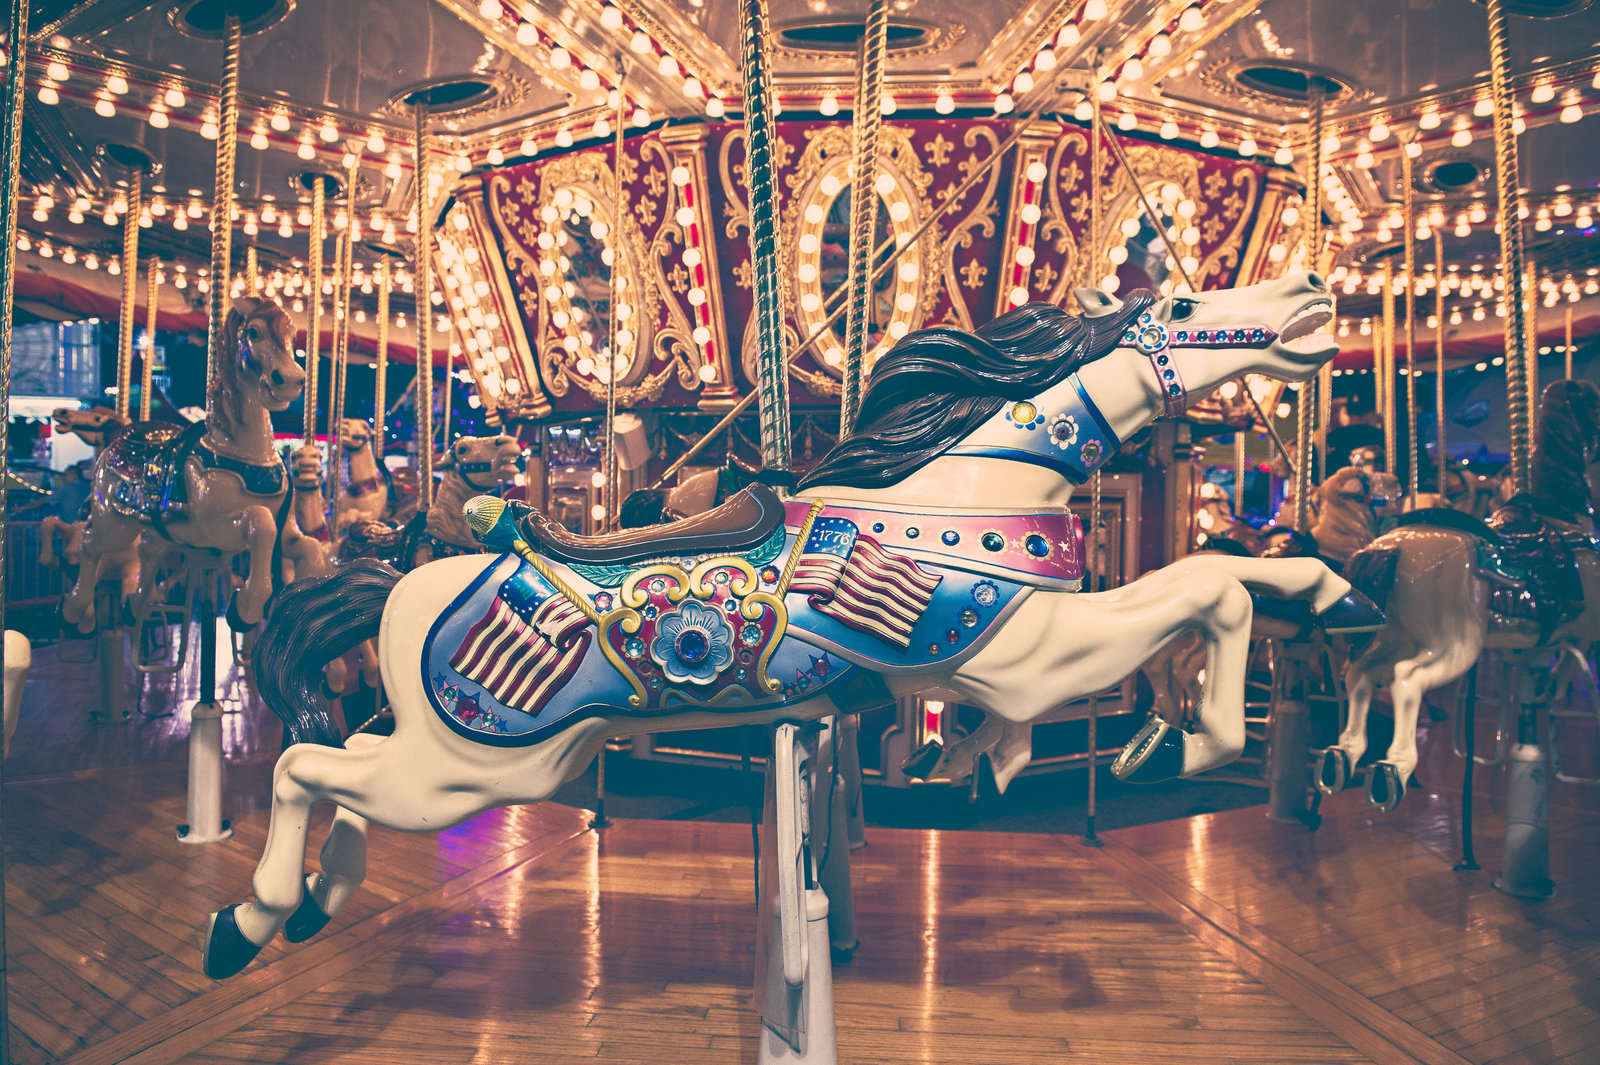 Carousel horse at Orange County Fair